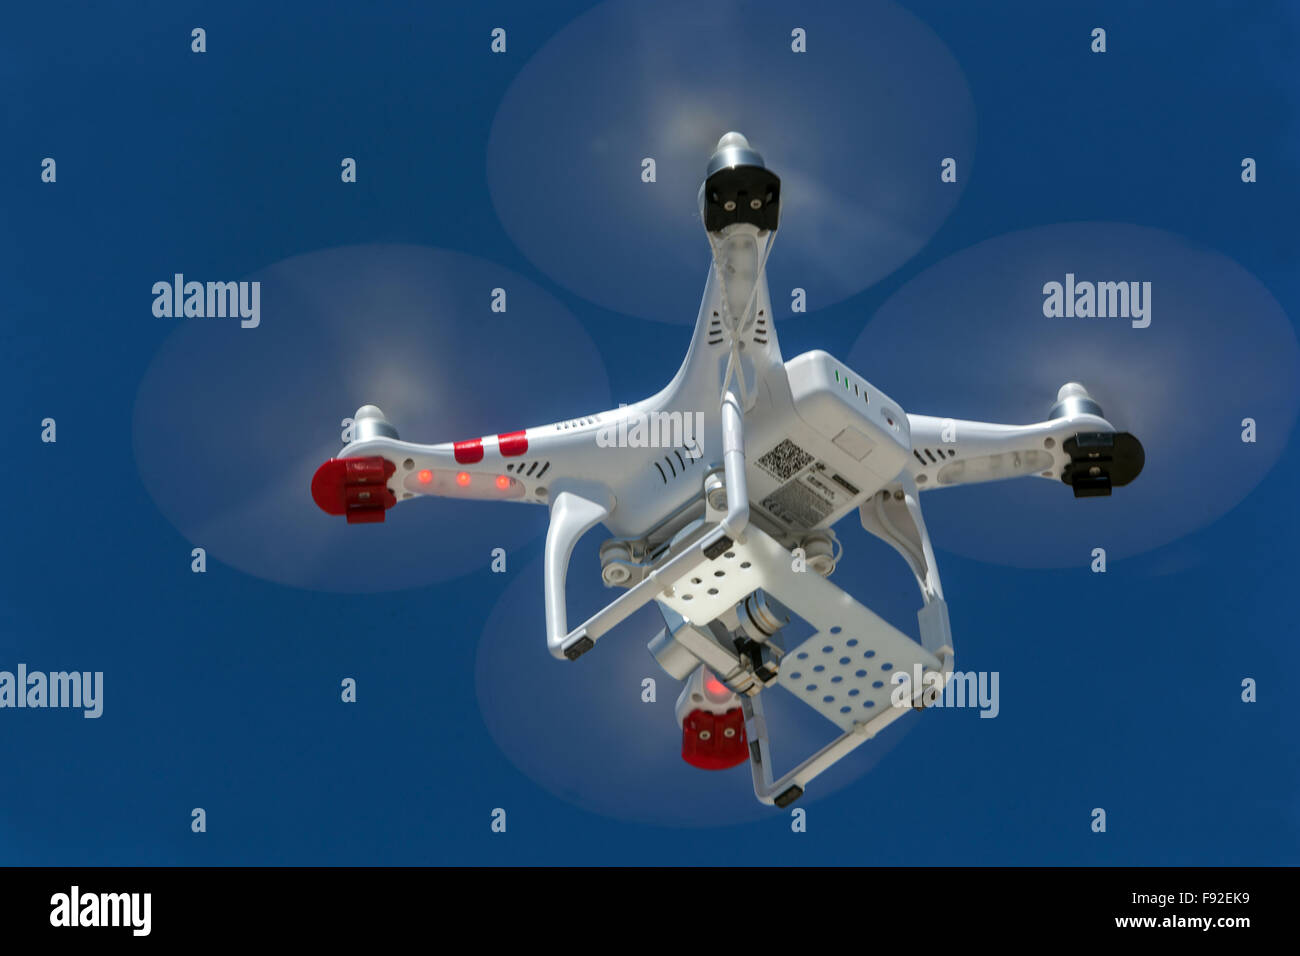 flying drone - Stock Image